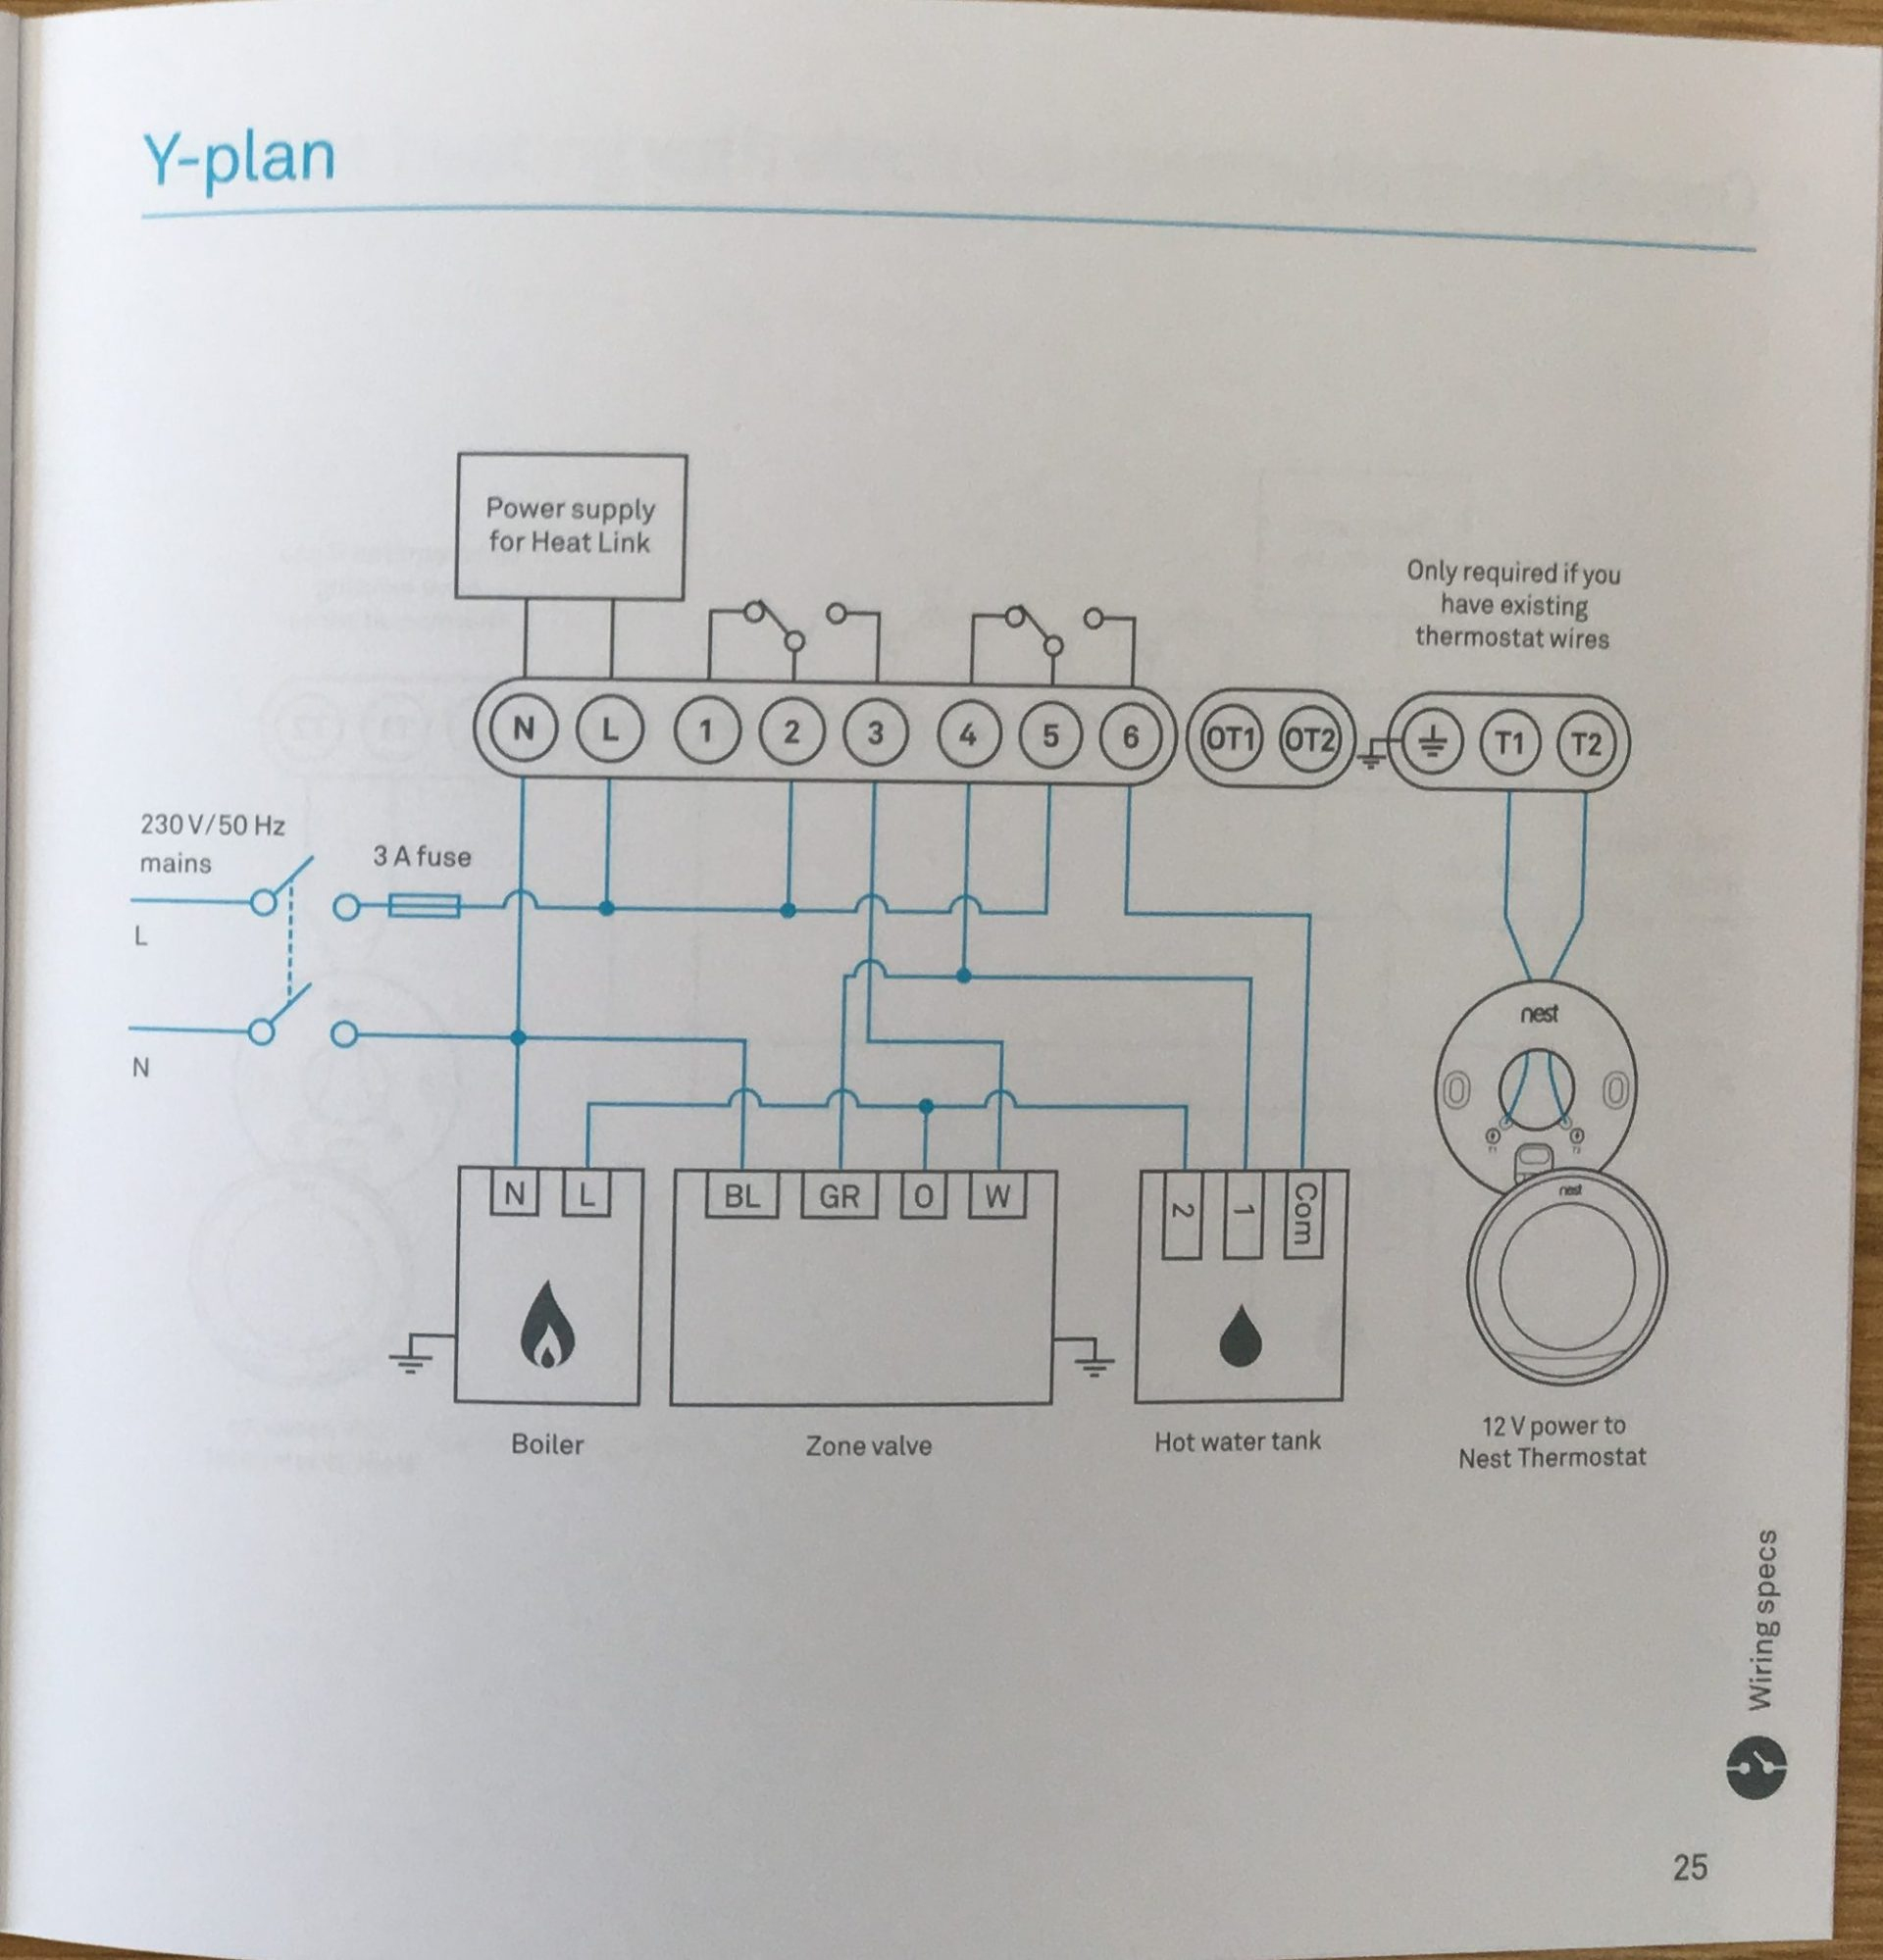 How To Install The Nest Learning Thermostat (3Rd Gen) In A Y-Plan - Nest 3 Wiring Diagram Uk